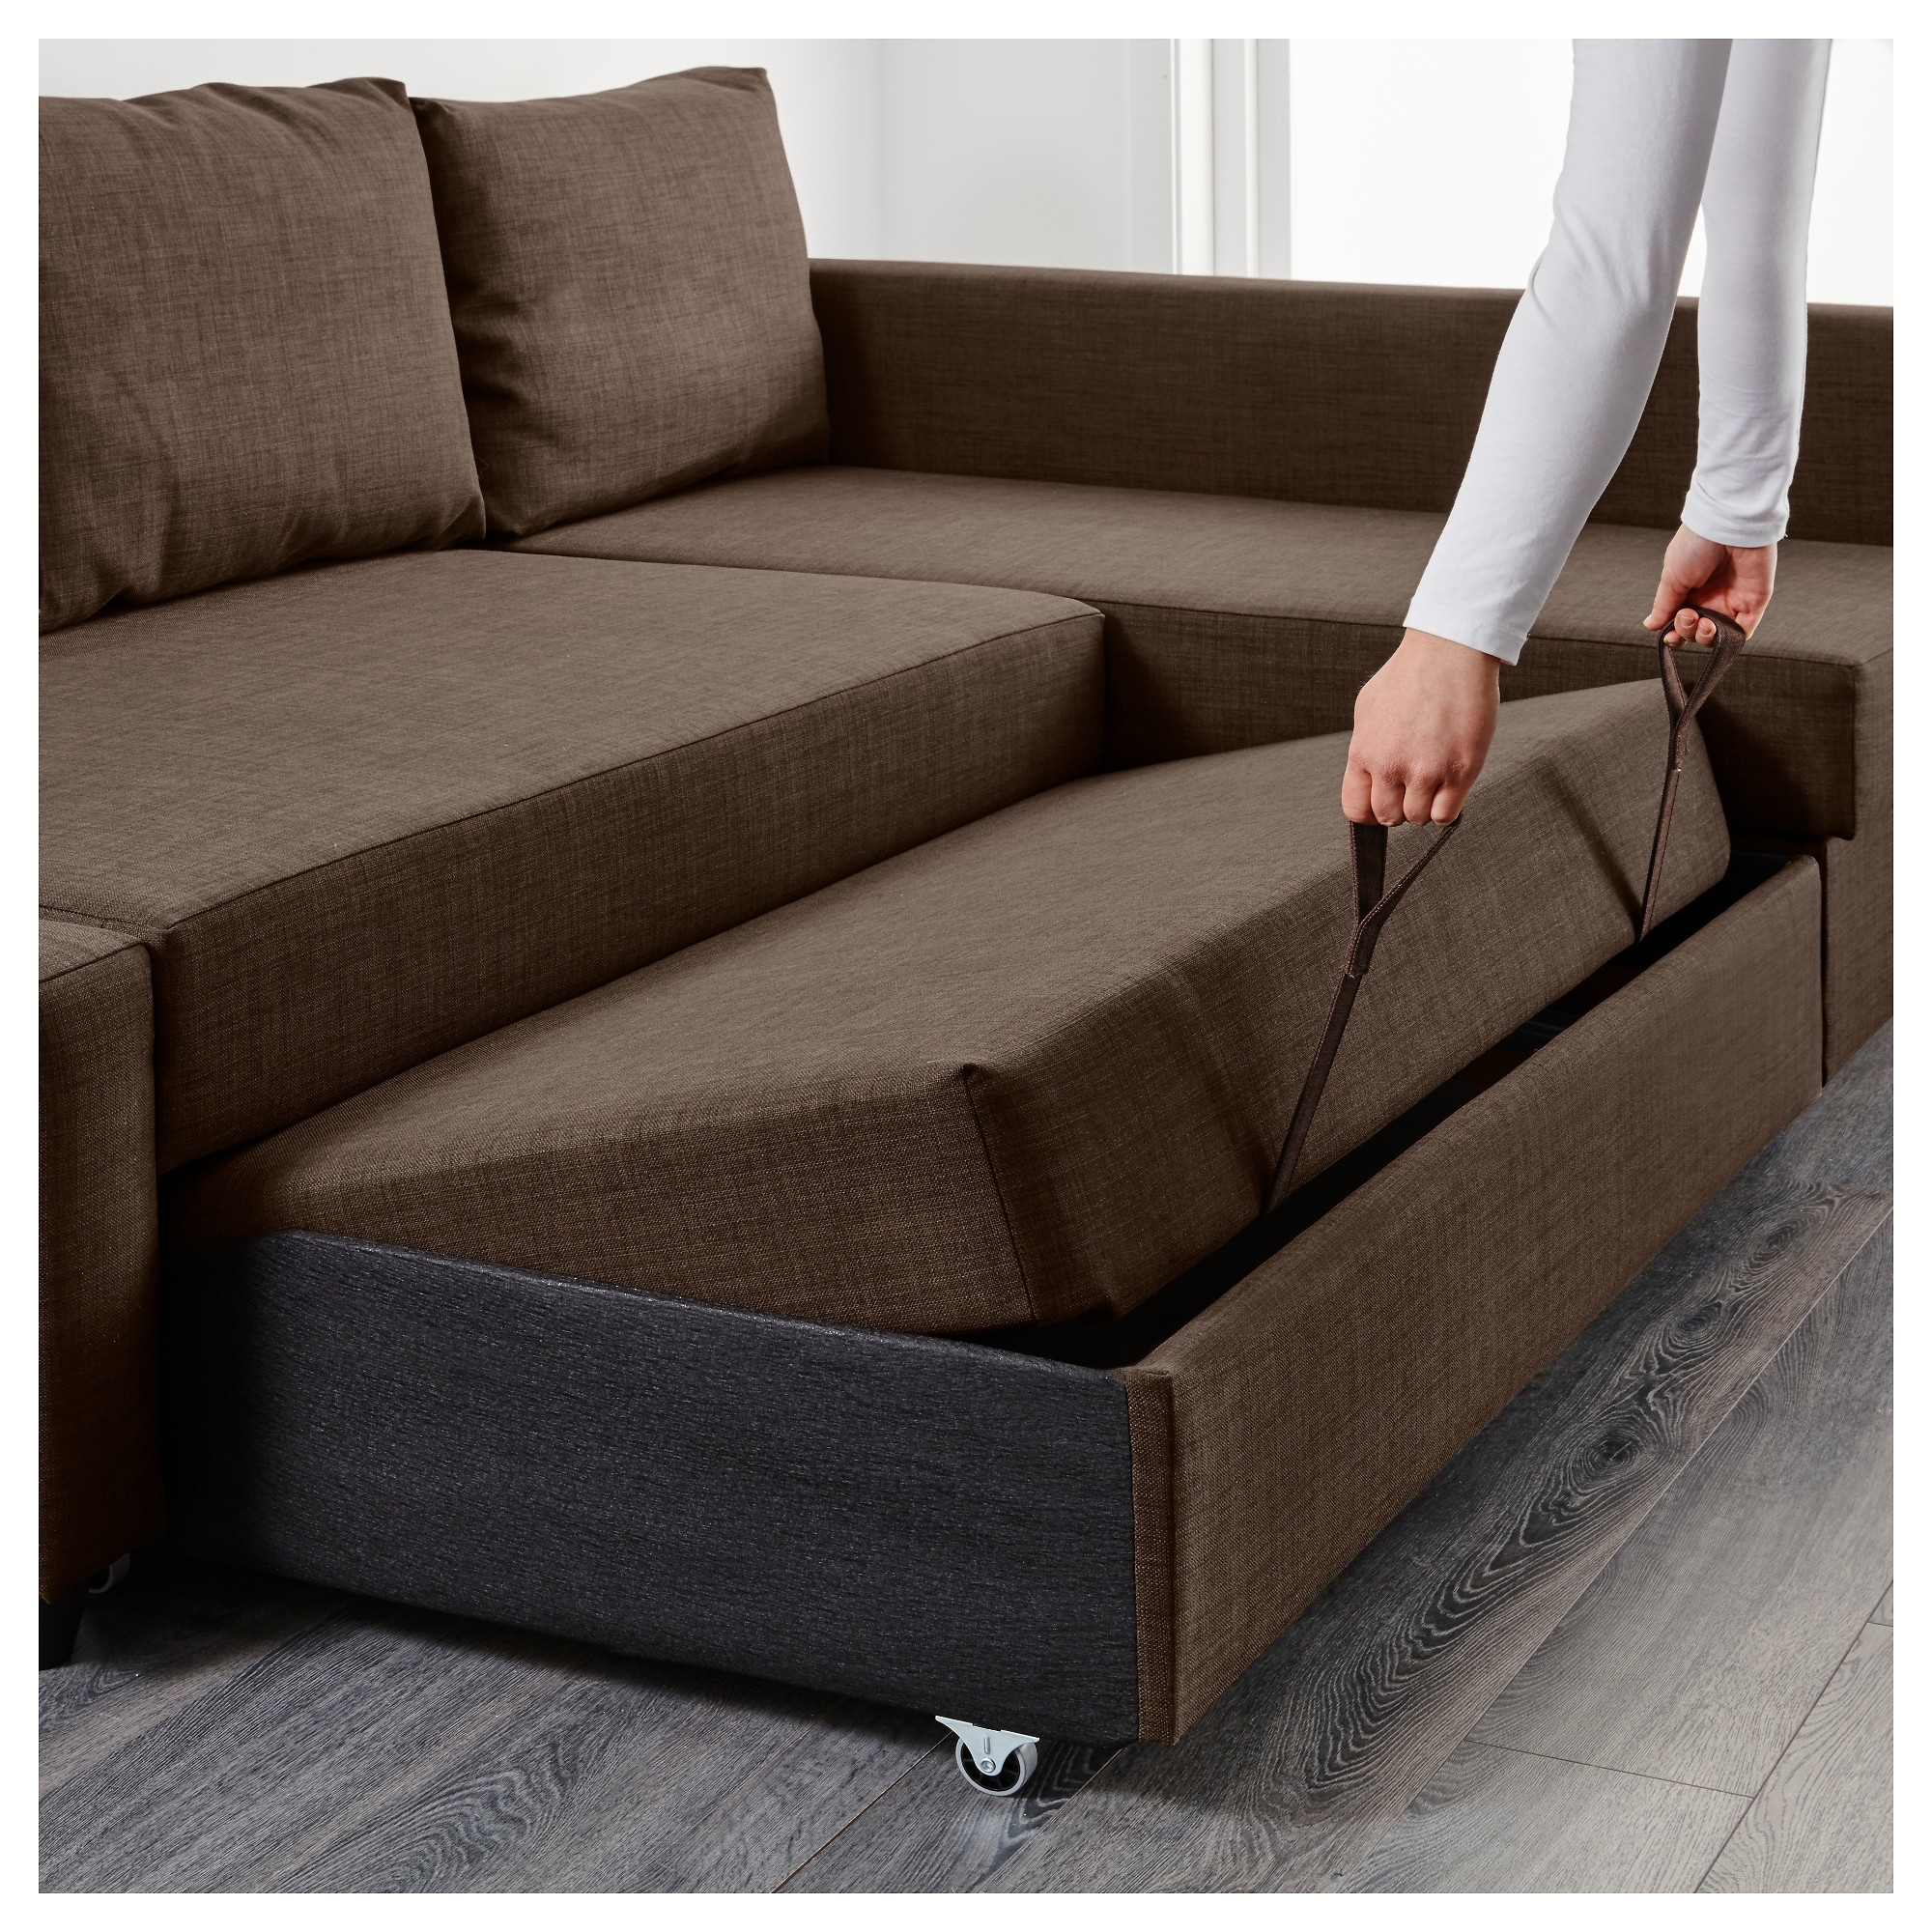 Chaise Sofa Beds With Storage Intended For Most Recently Released Friheten Sleeper Sectional,3 Seat W/storage – Skiftebo Dark Gray (View 1 of 15)